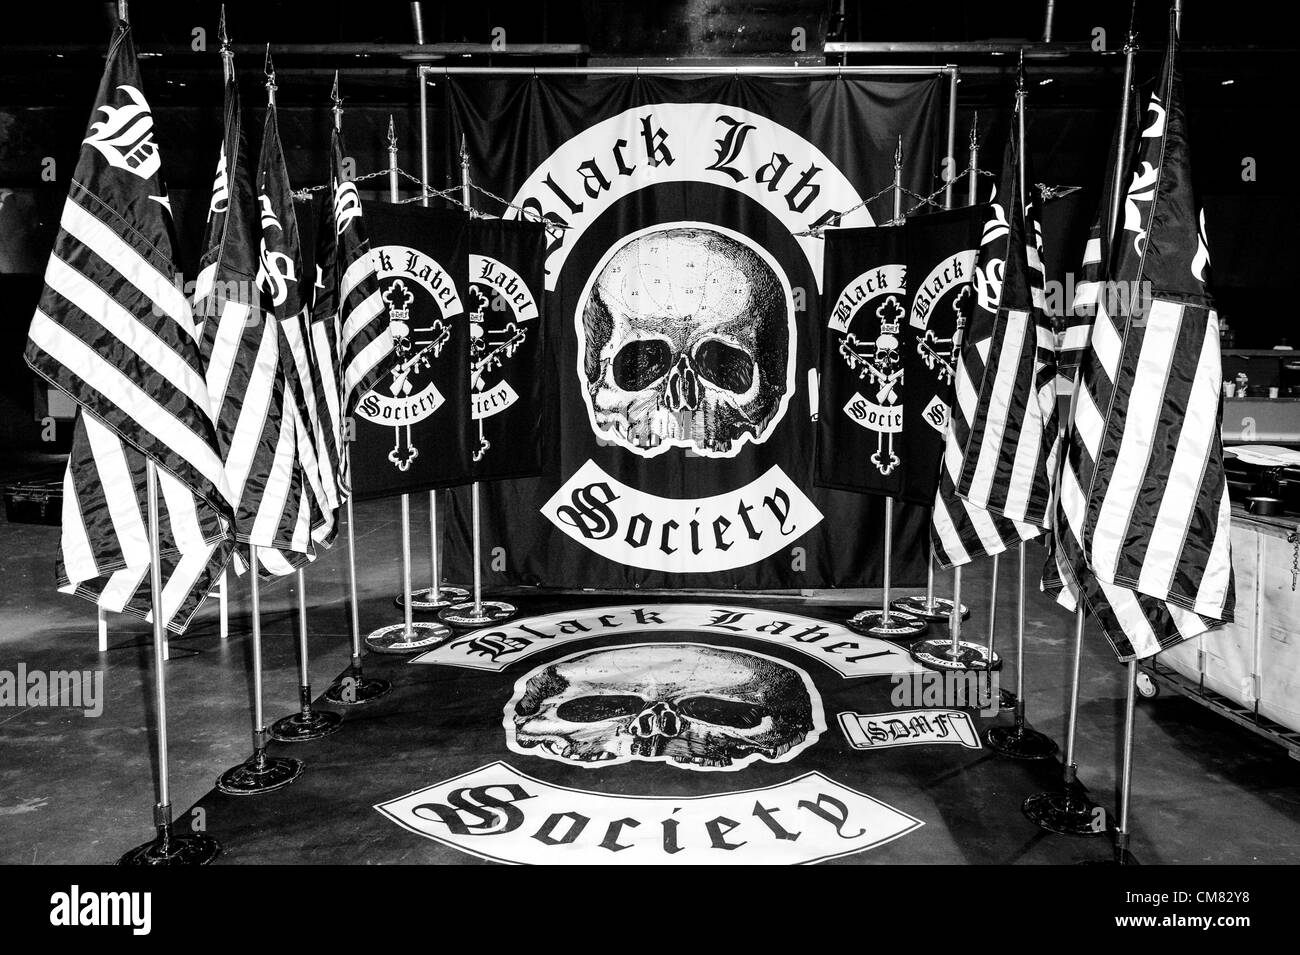 Black label society black and white stock photos images alamy oct 24 2012 toronto ontario canada black label society meet m4hsunfo